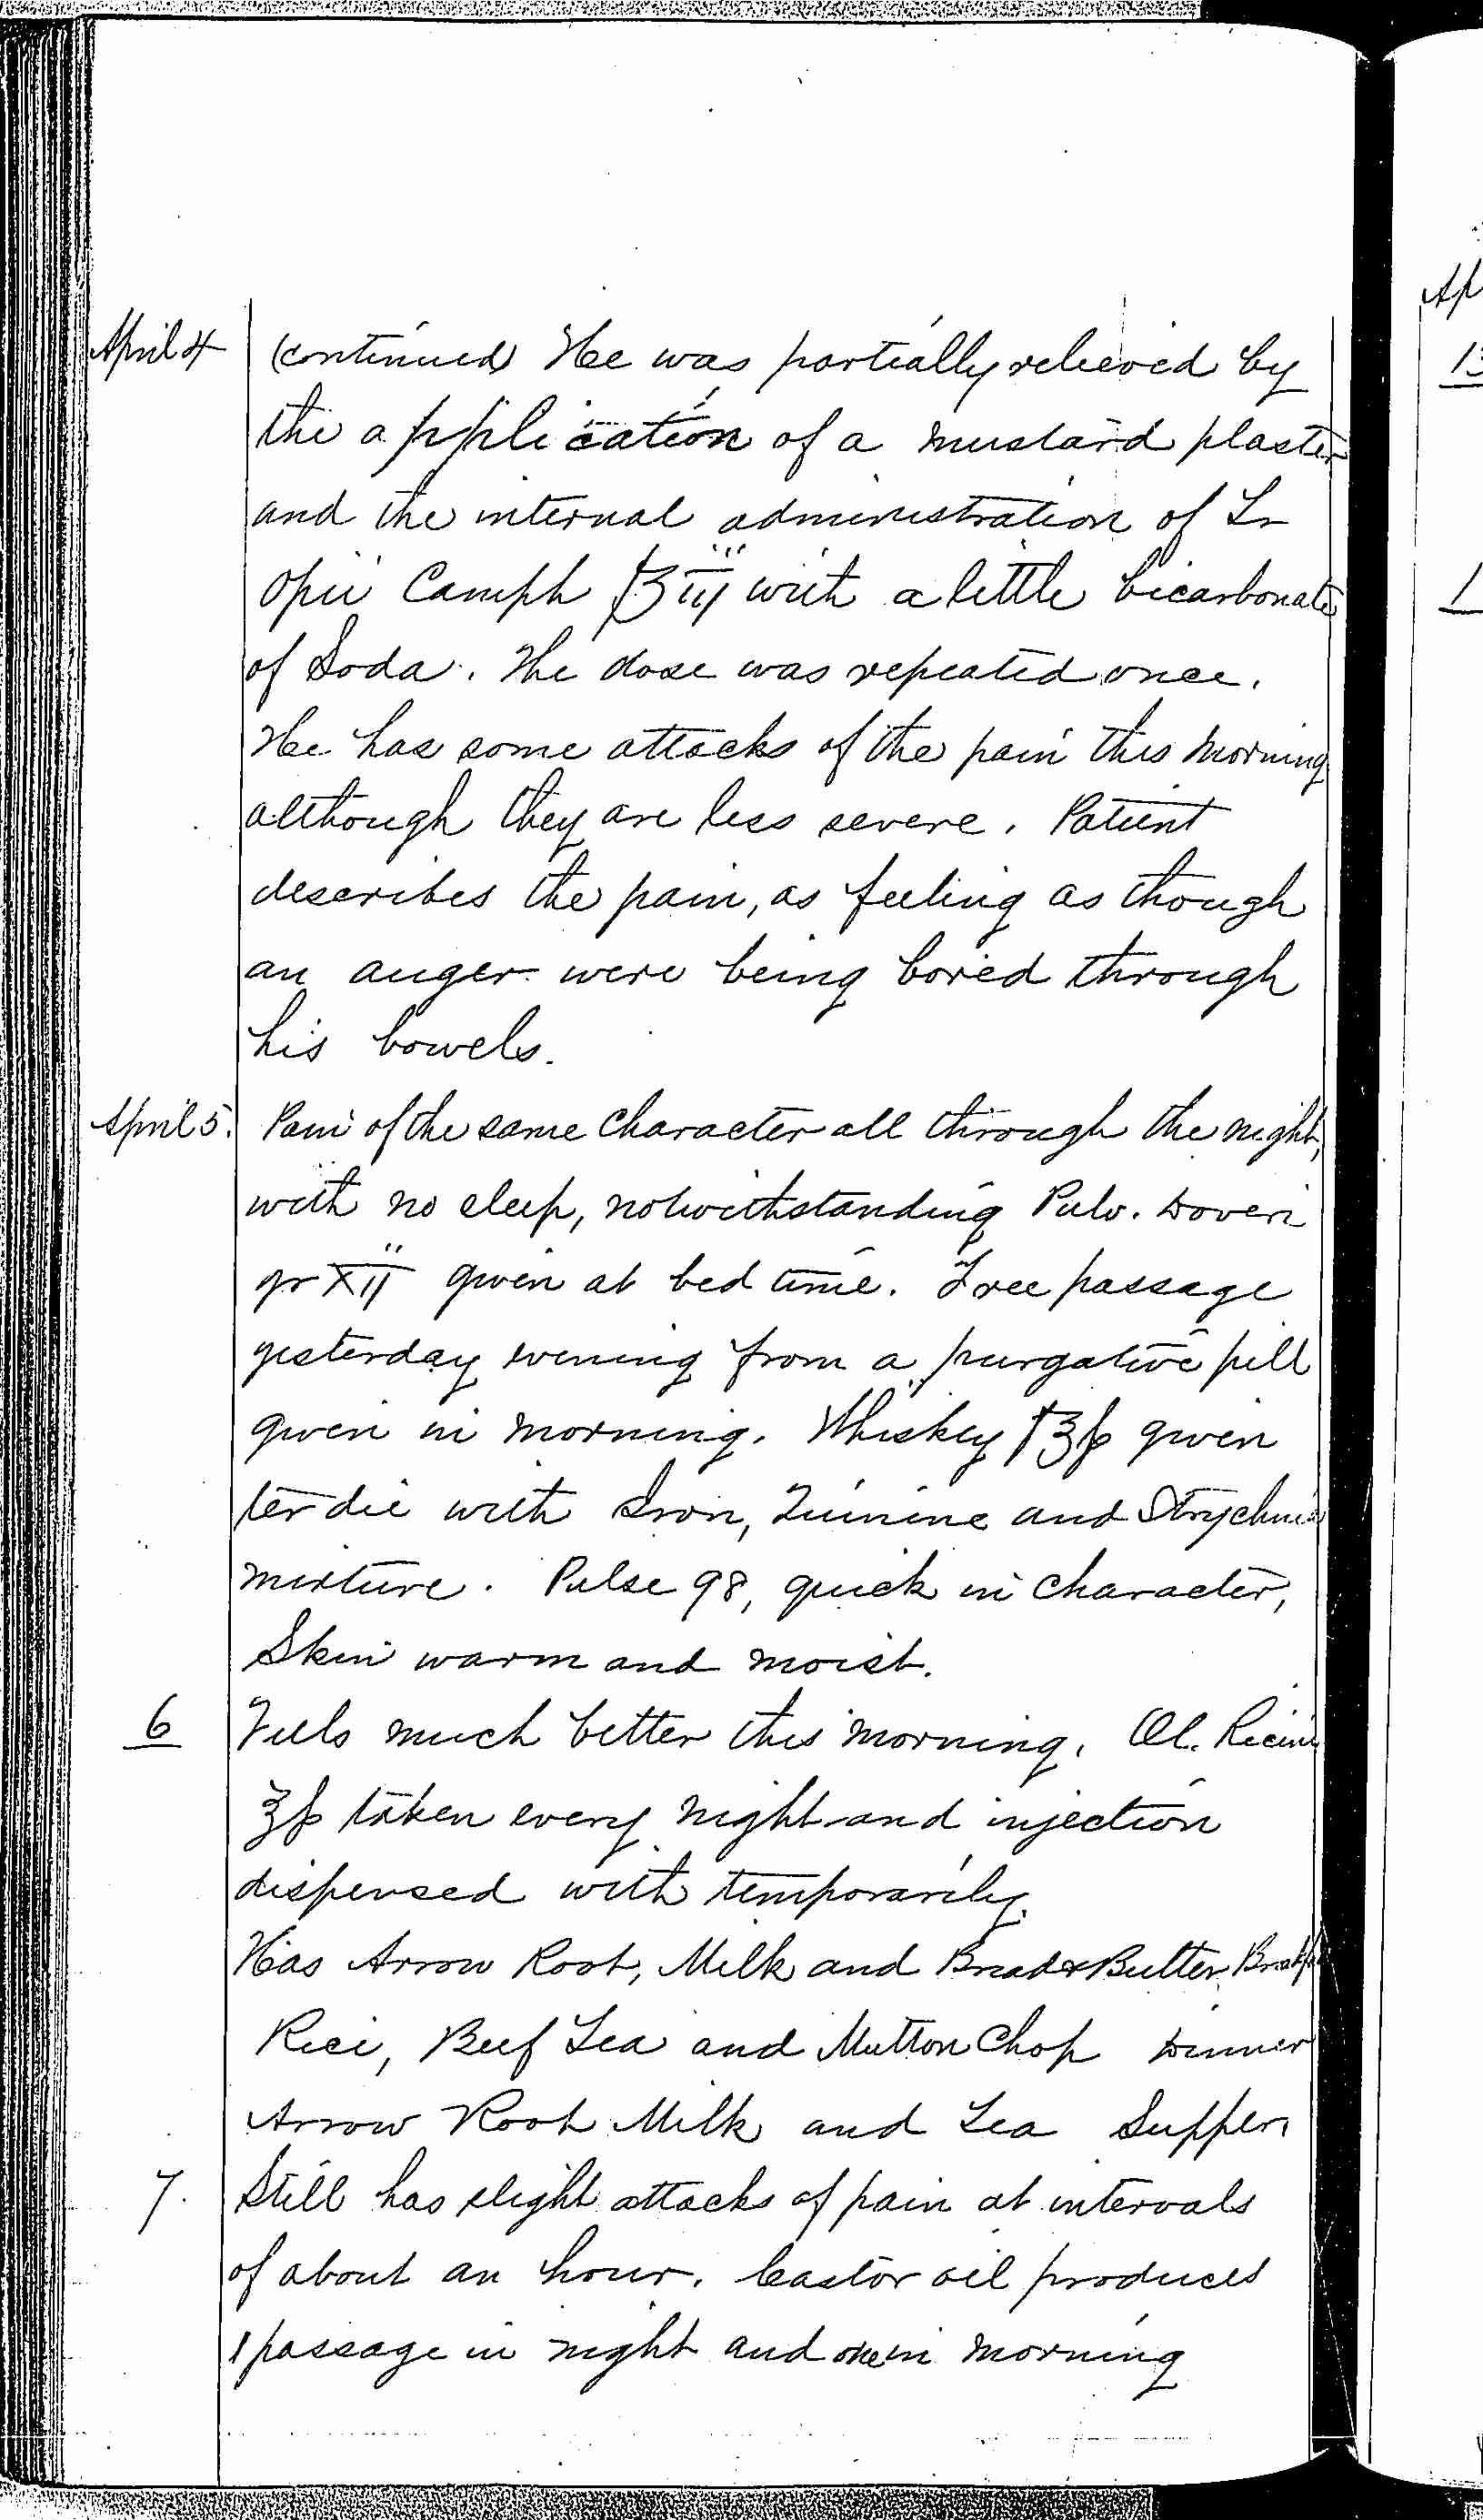 Entry for William Brady (page 4 of 5) in the log Hospital Tickets and Case Papers - Naval Hospital - Washington, D.C. - 1868-69